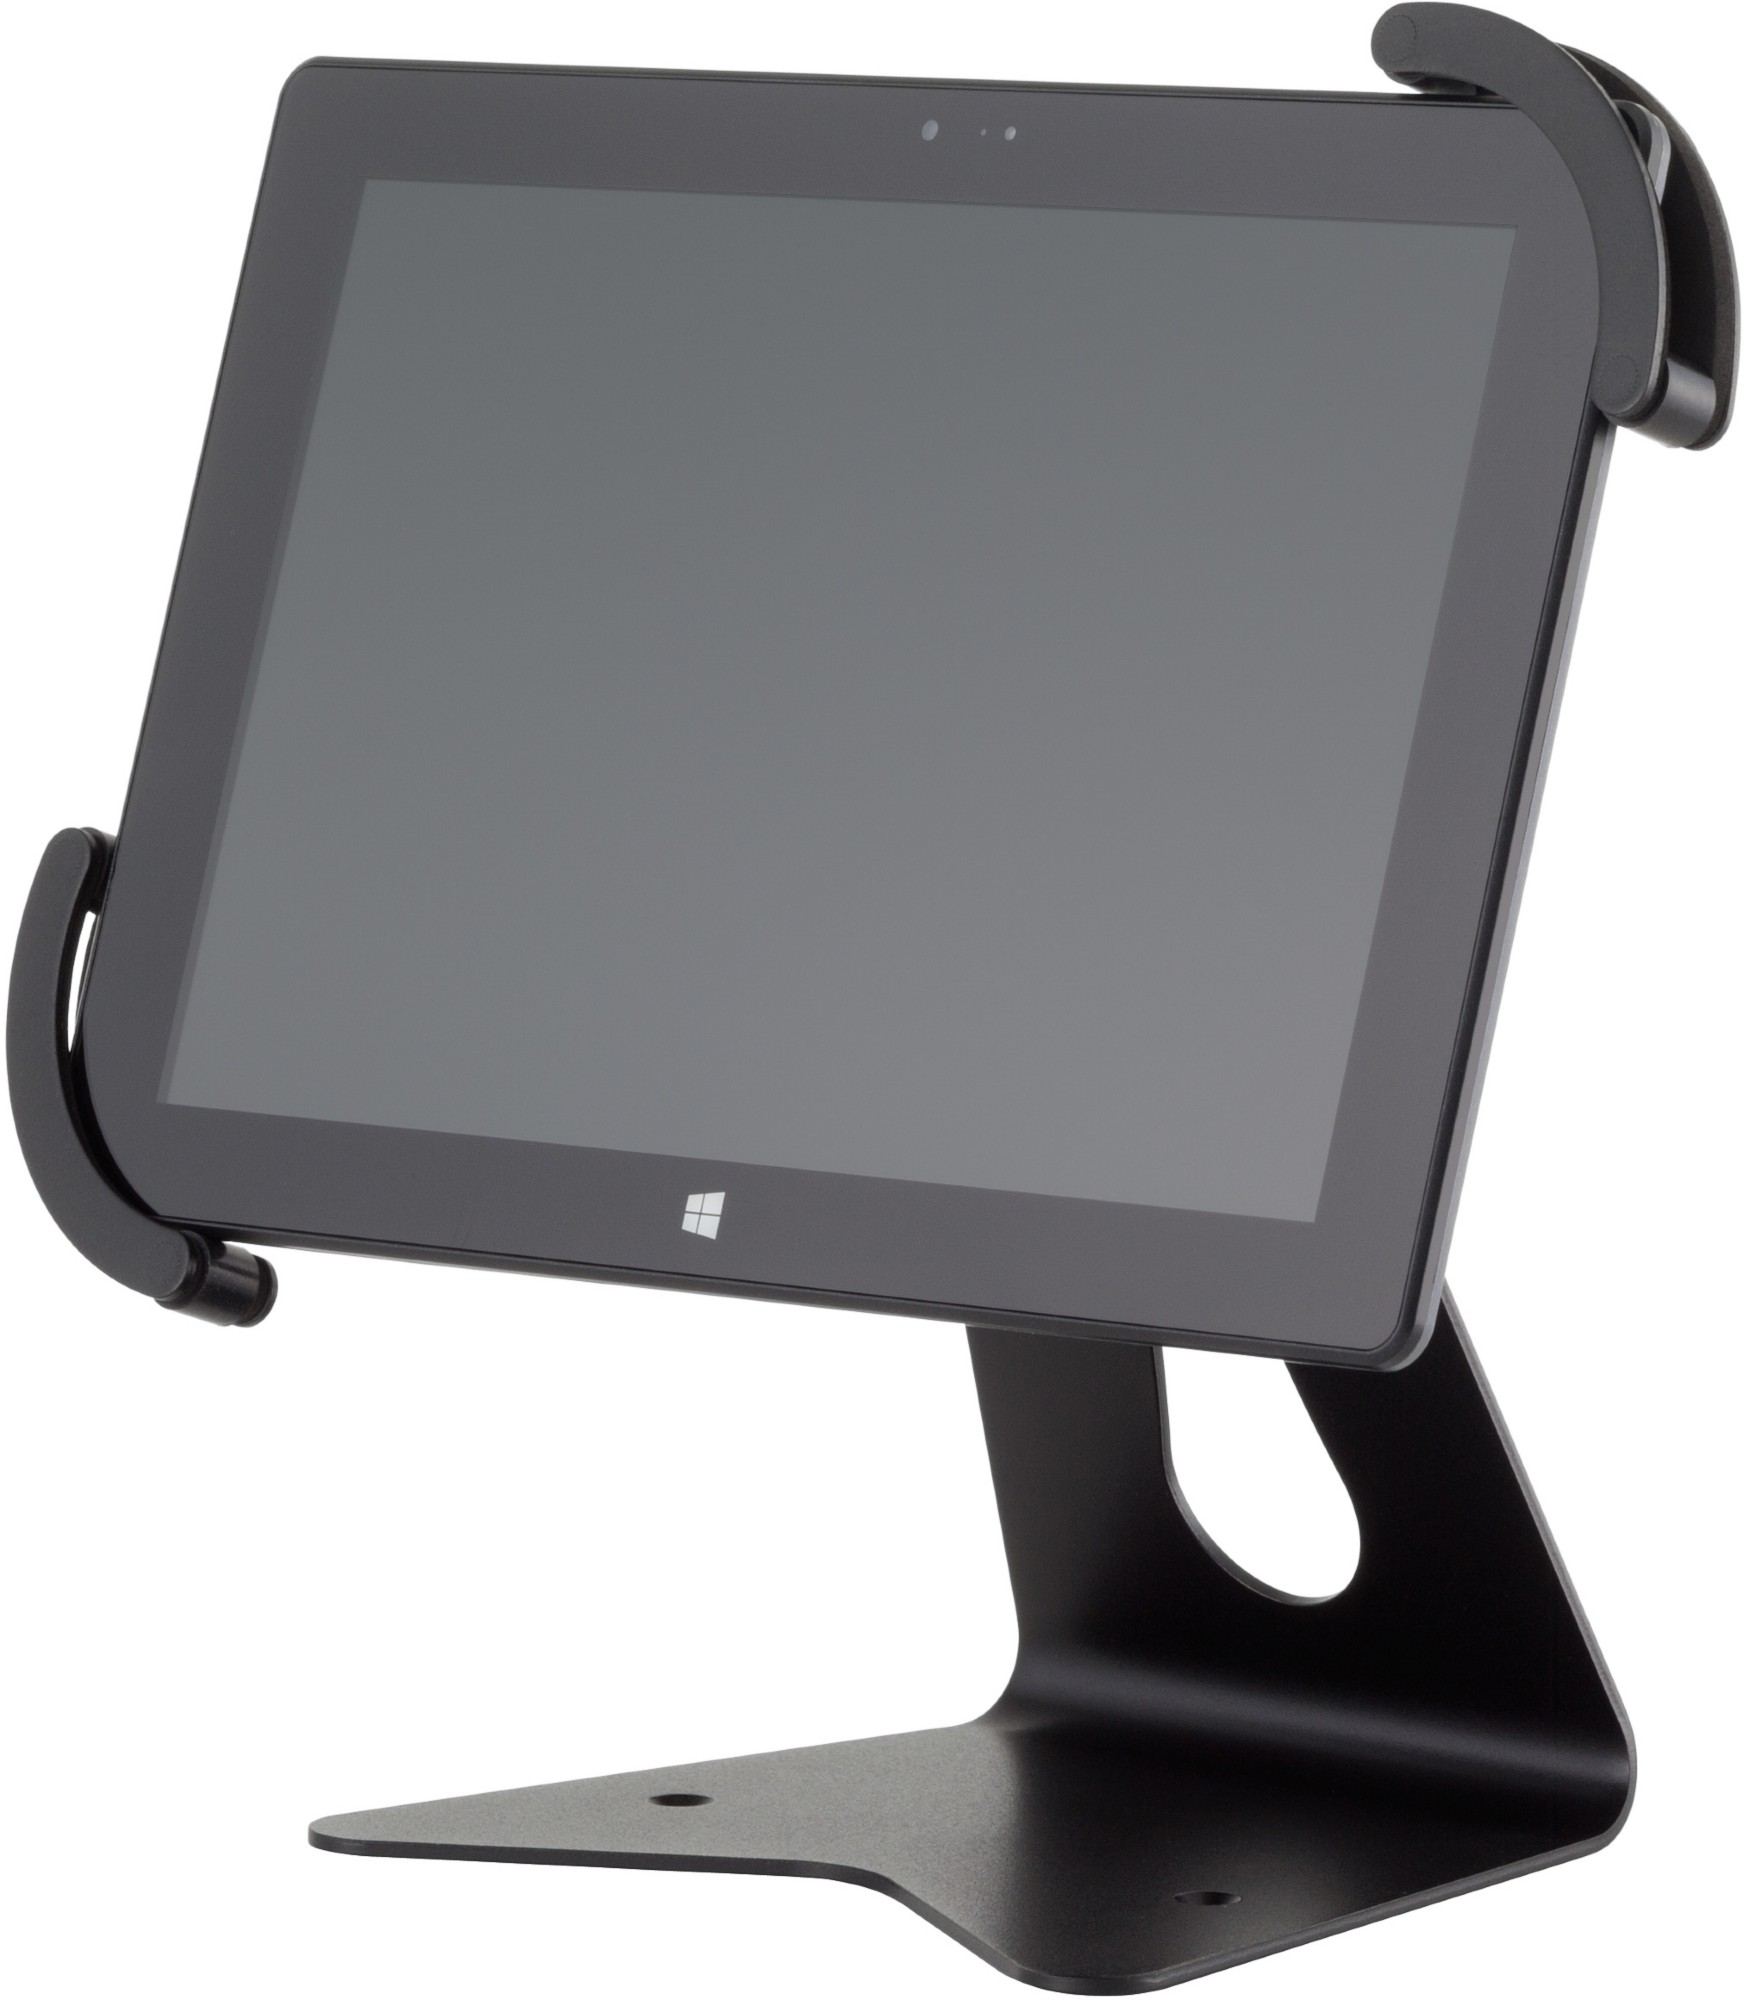 EPSON 7110080 TABLET STAND, BLACK